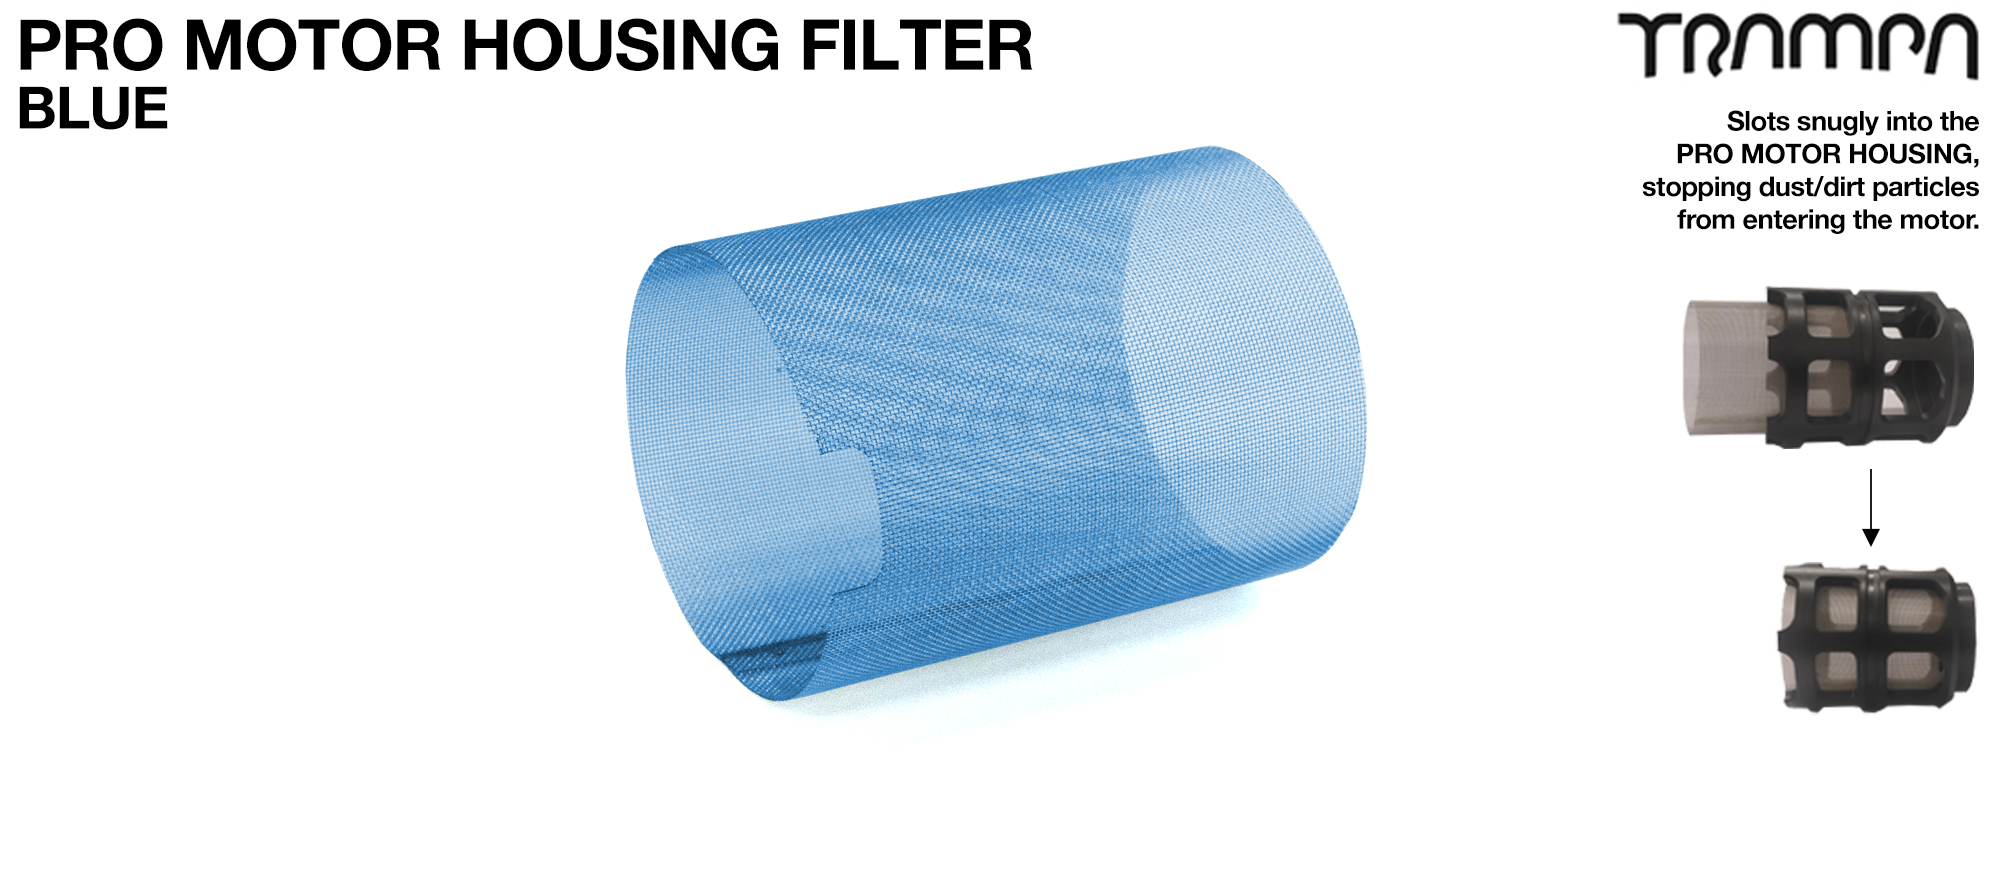 Motor Protection Cover MESH FILTER - BLUE